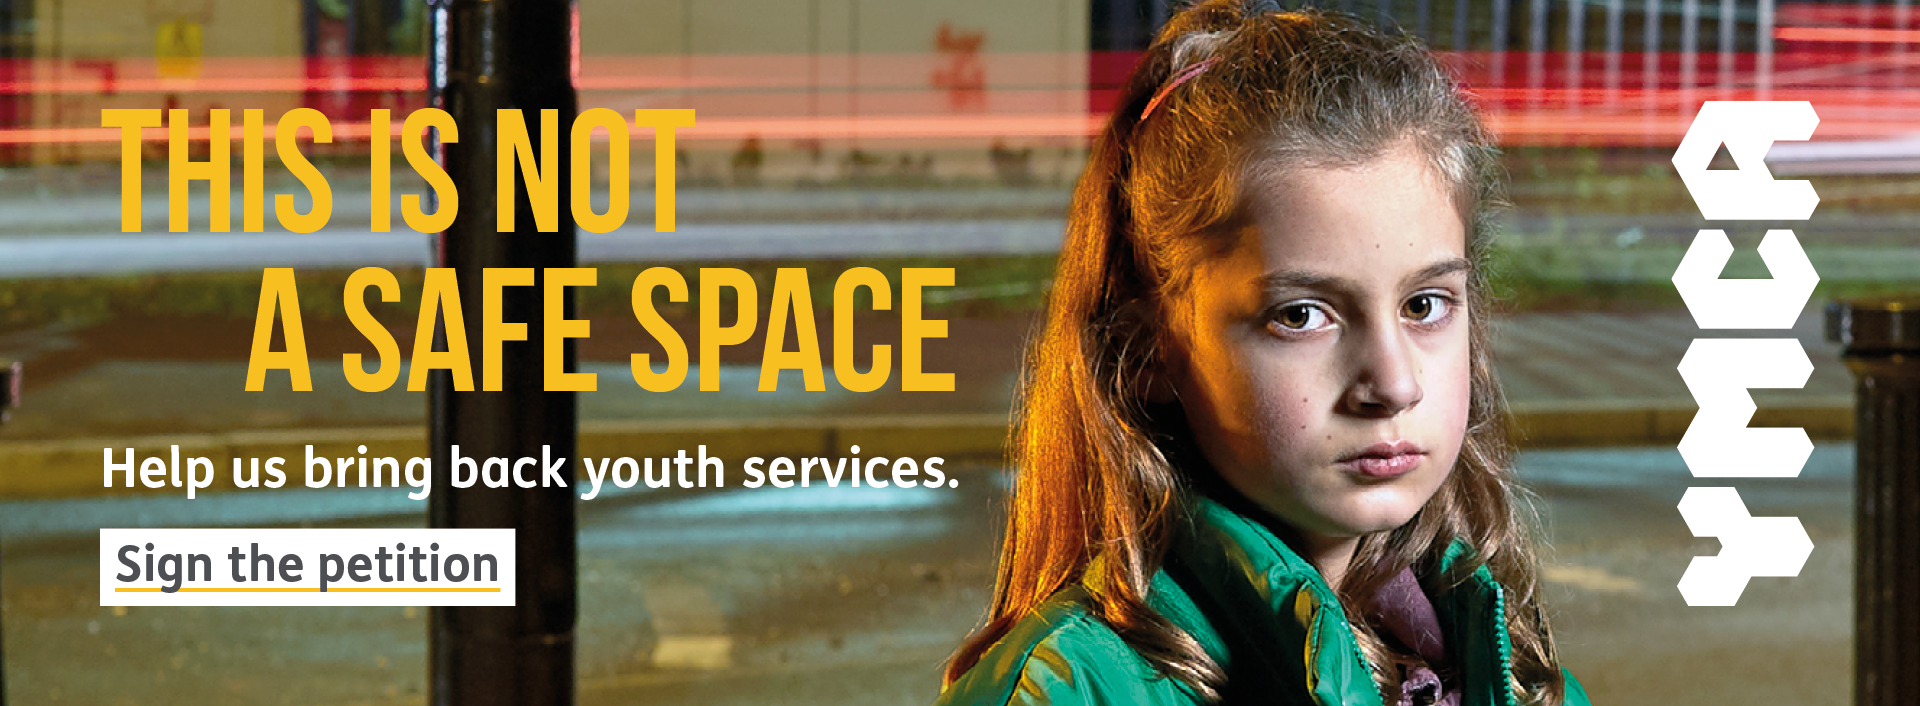 ymca safe space web banner 2 1 - Home